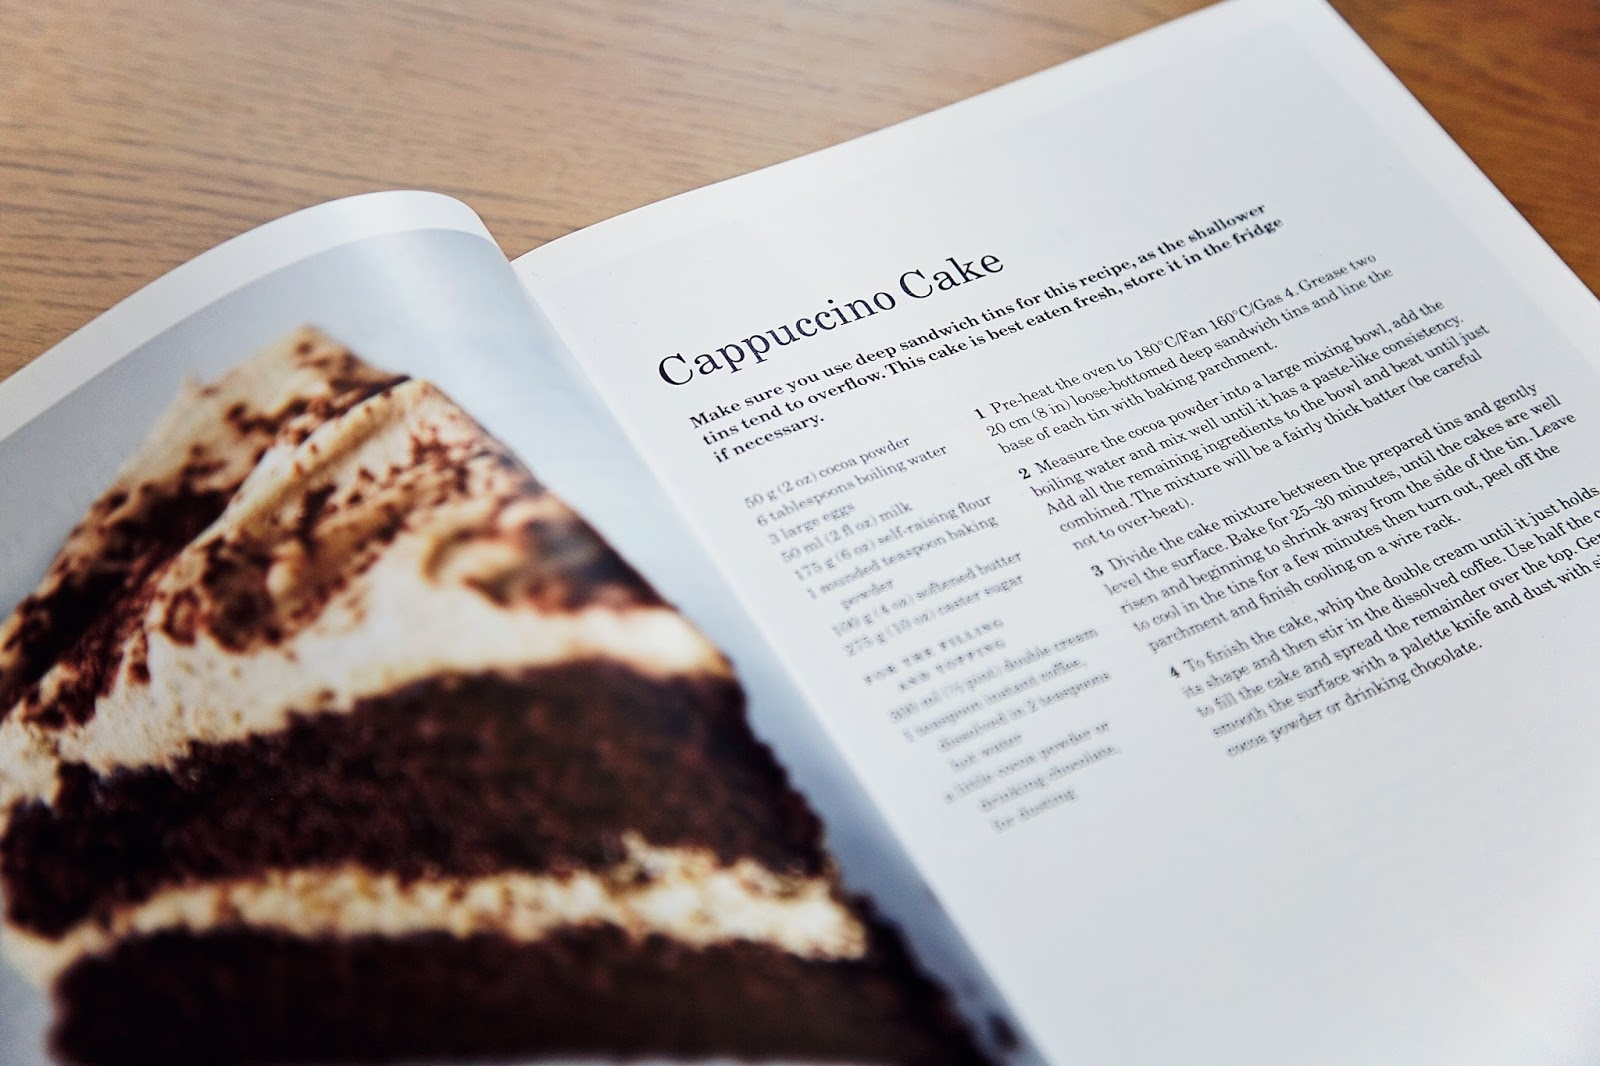 Mary Berry's Cappuccino Cake Recipe Page